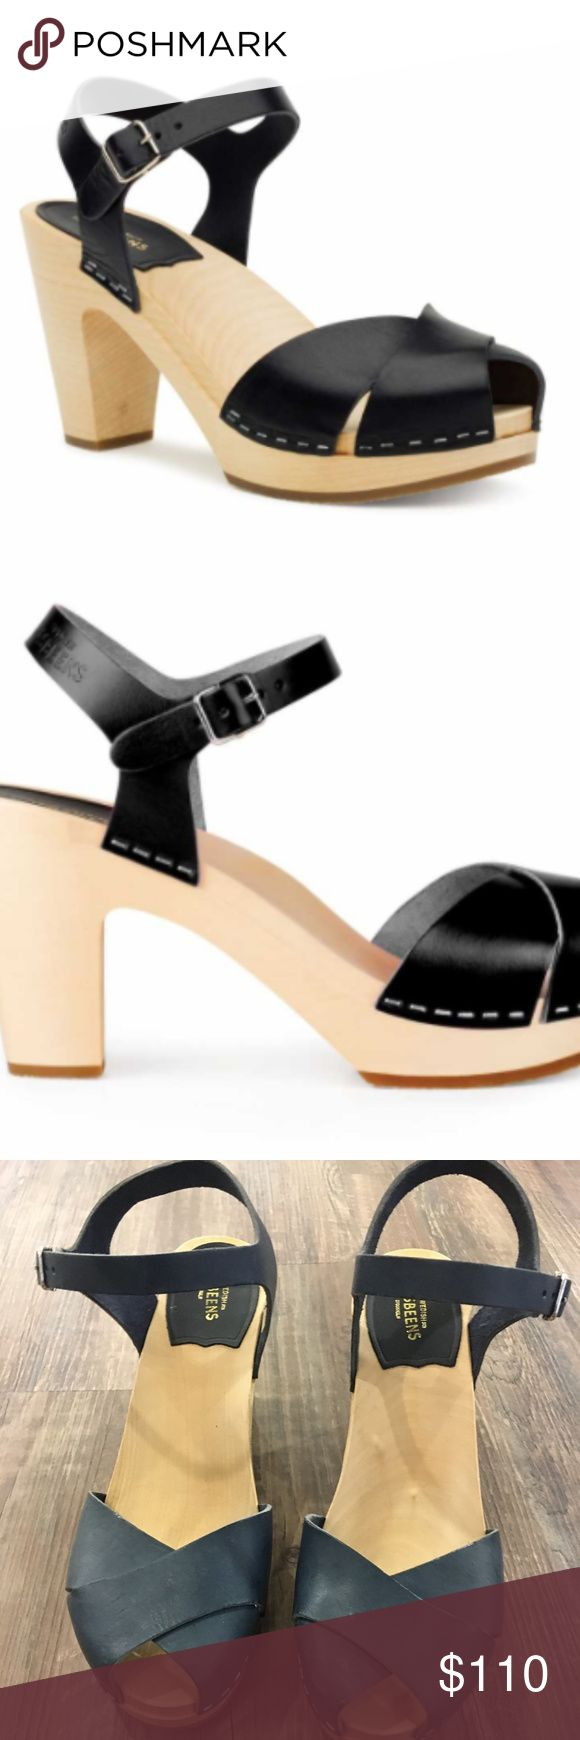 Swedish Hasbeens in Merci Sandal in Black Heel is 9.5 cm high (3.7 inches) Lime-tree wooden heel with rubber sole Italian natural grain leather, chrome free Swedish Hasbeens Shoes Sandals